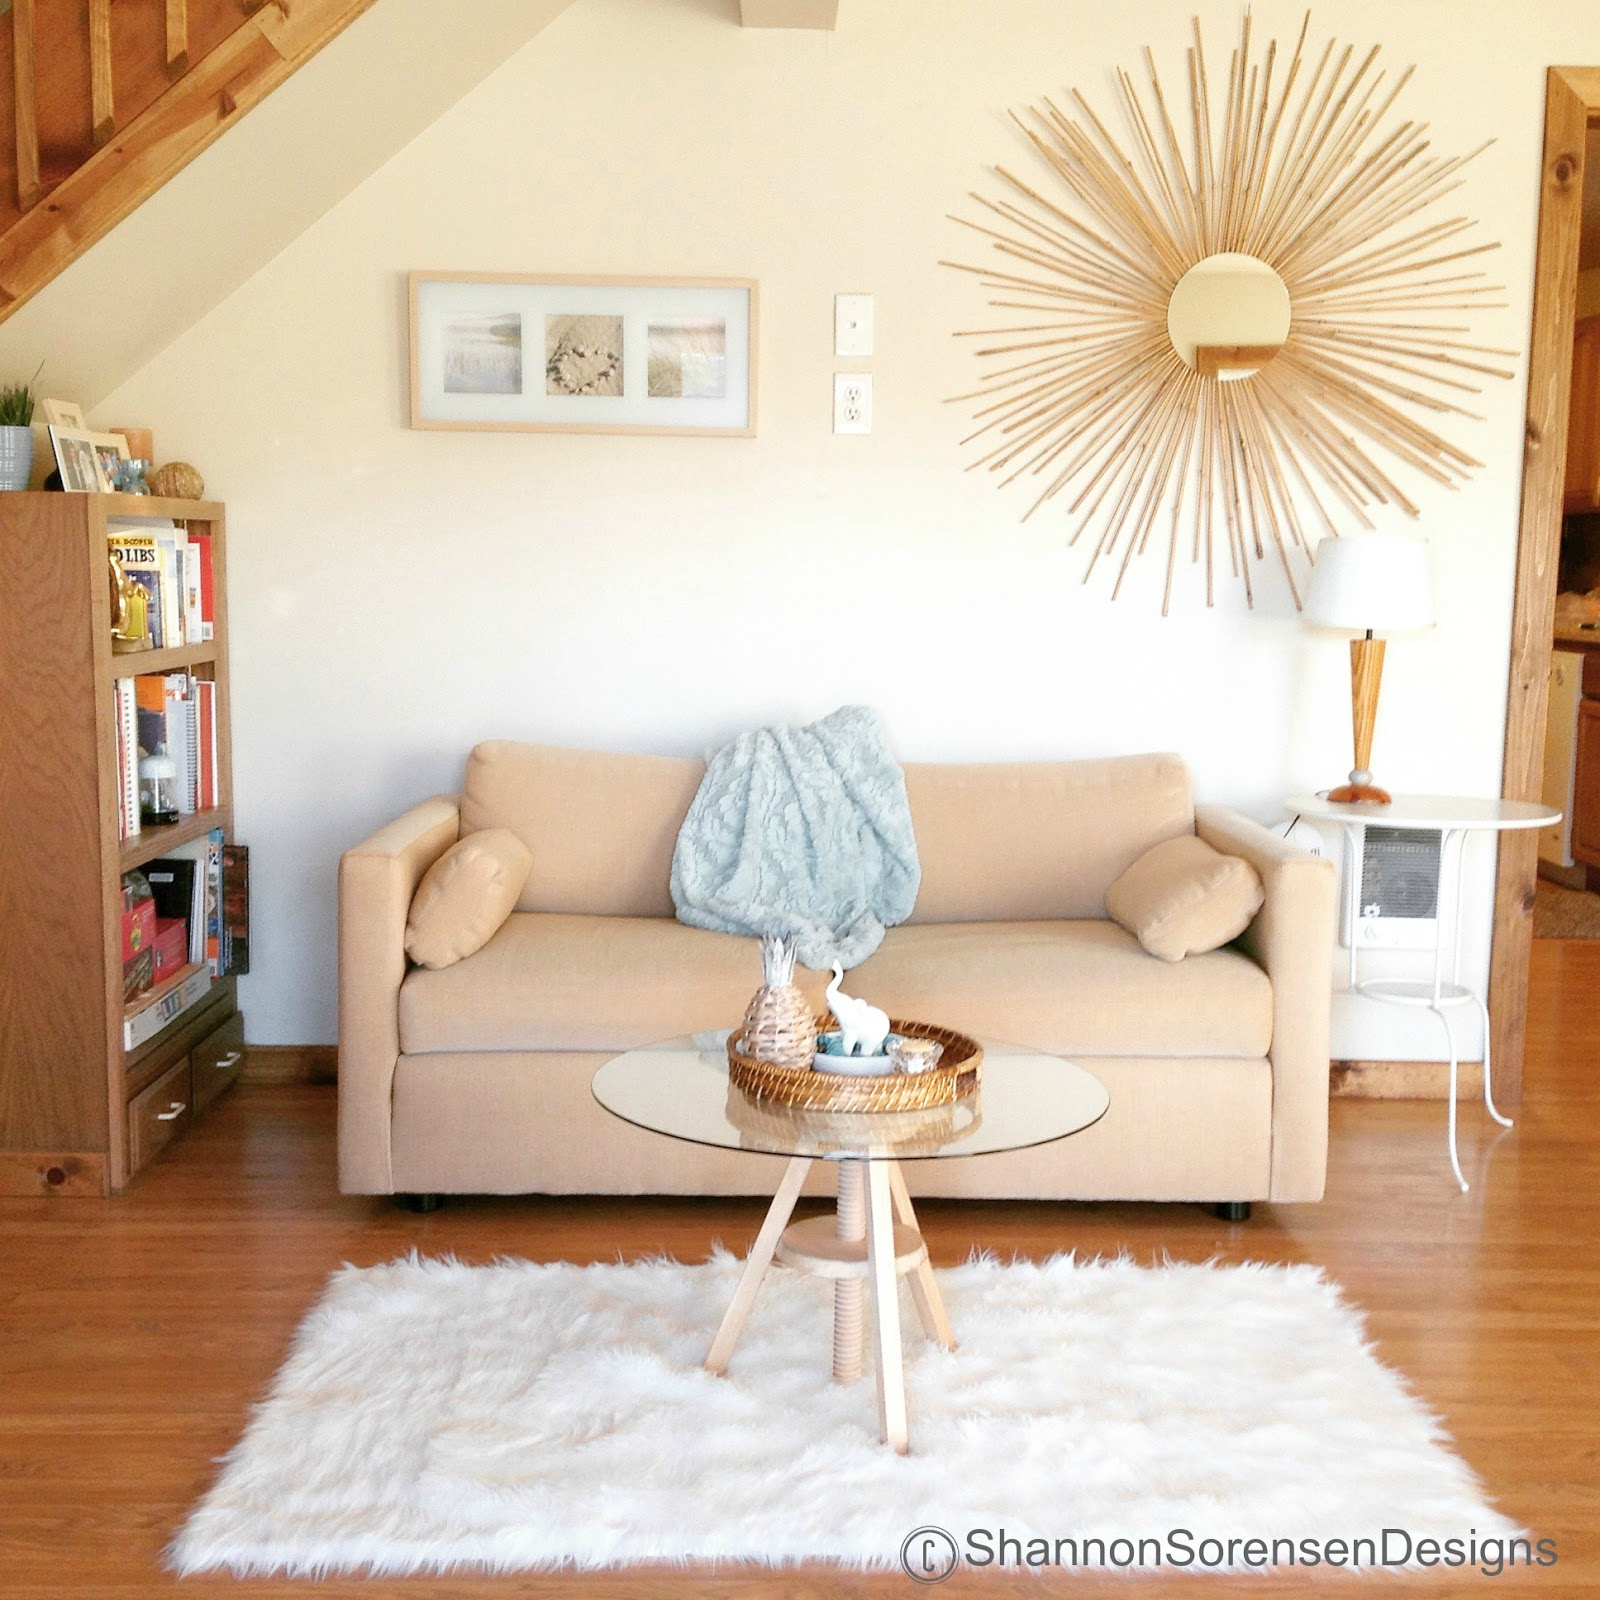 decorating with thrift store furniture, diy decorating